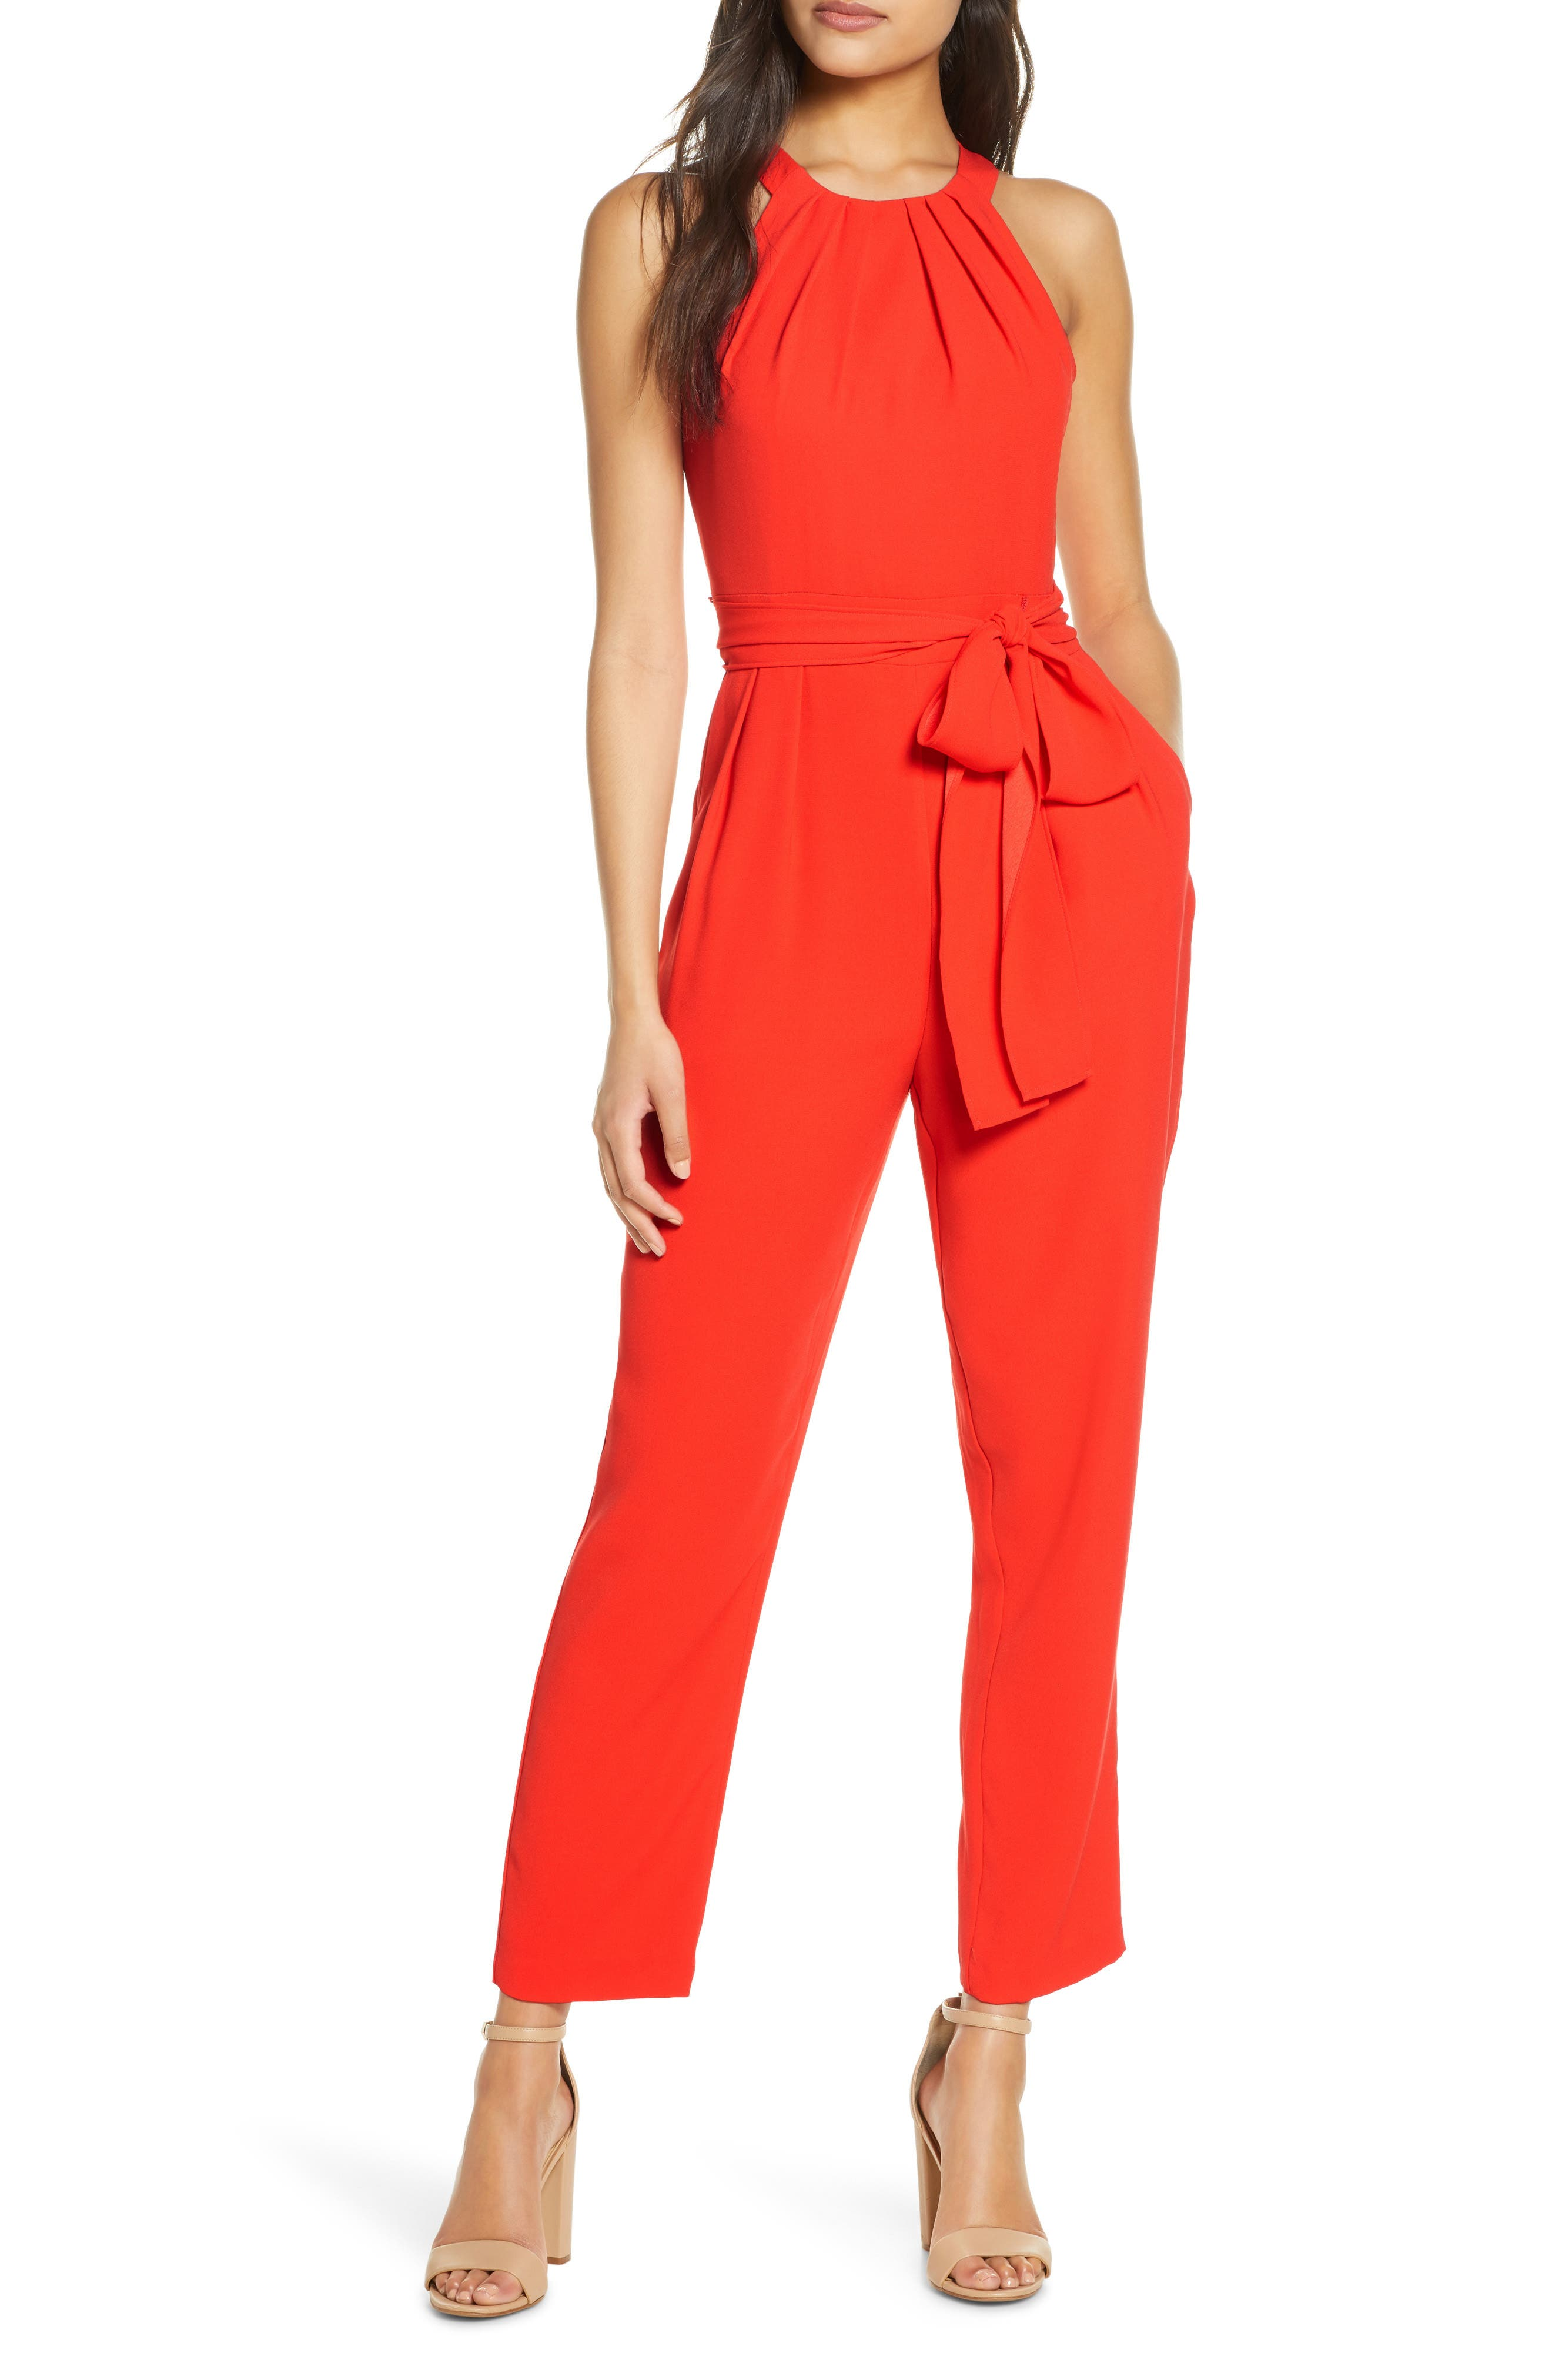 A generous tonal sash adds a pretty accent at your waist in this color-saturated halter jumpsuit with convenient side pockets. Style Name: Eliza J Halter Jumpsuit. Style Number: 6017790. Available in stores.